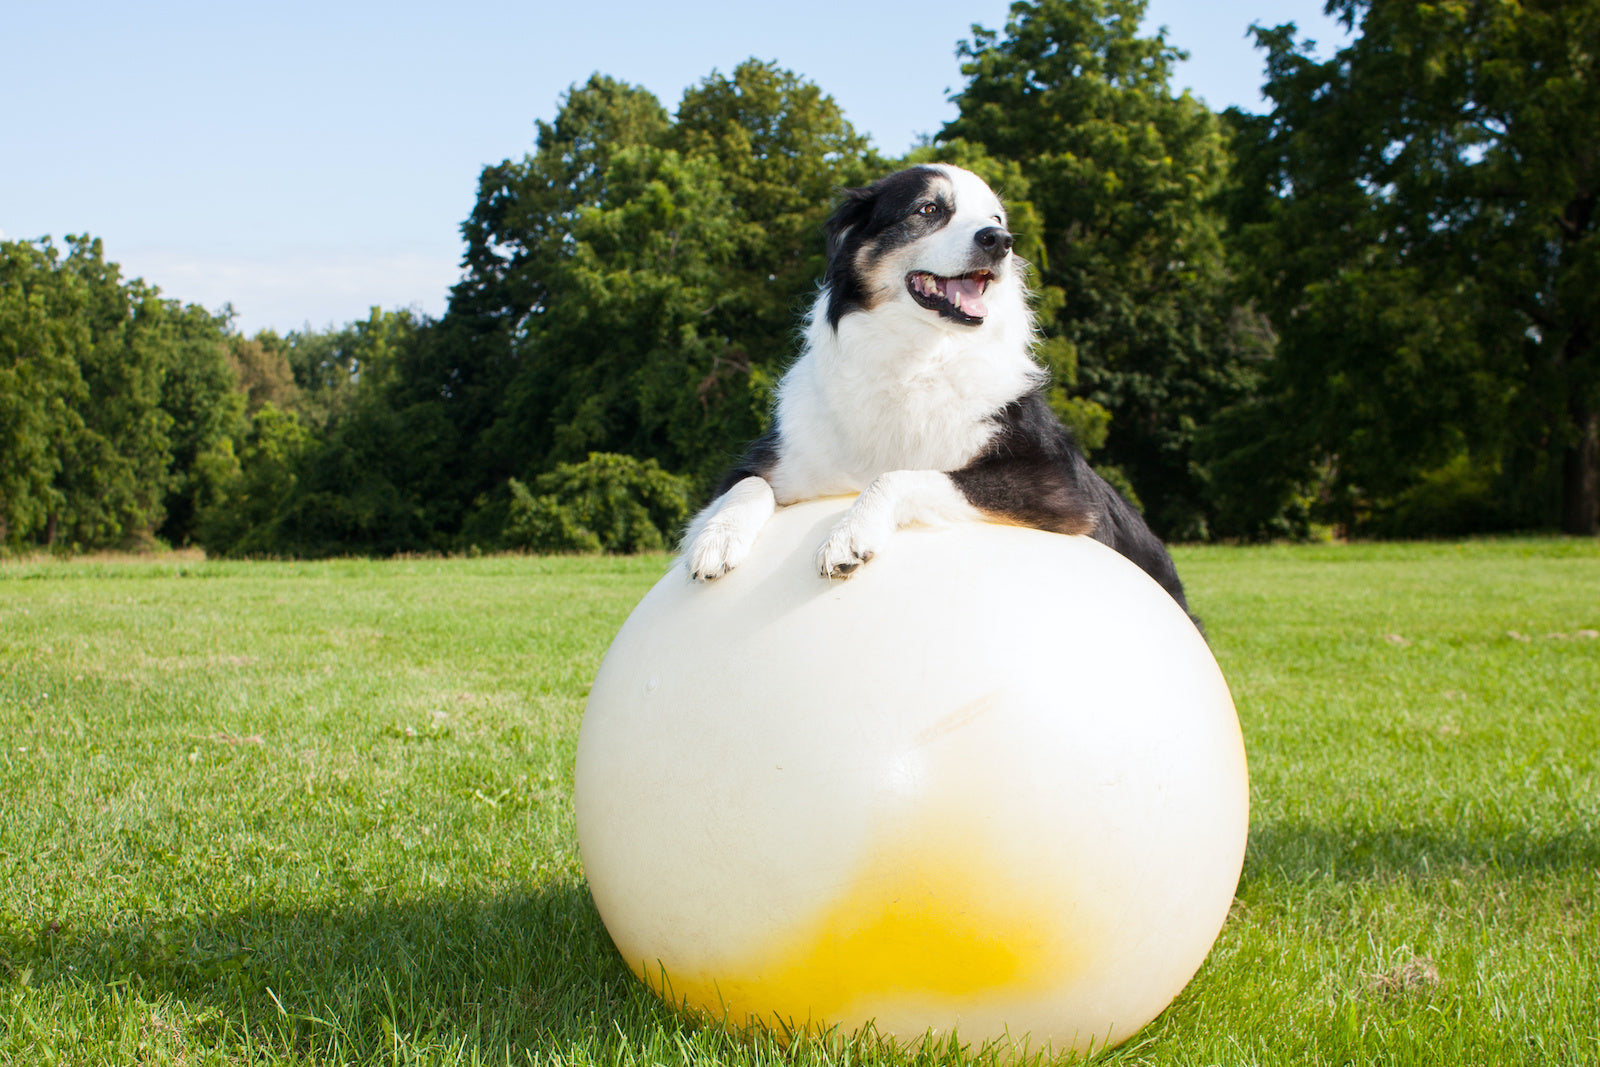 How to help a dog with arthritis at home: A dog balances on a pilates ball